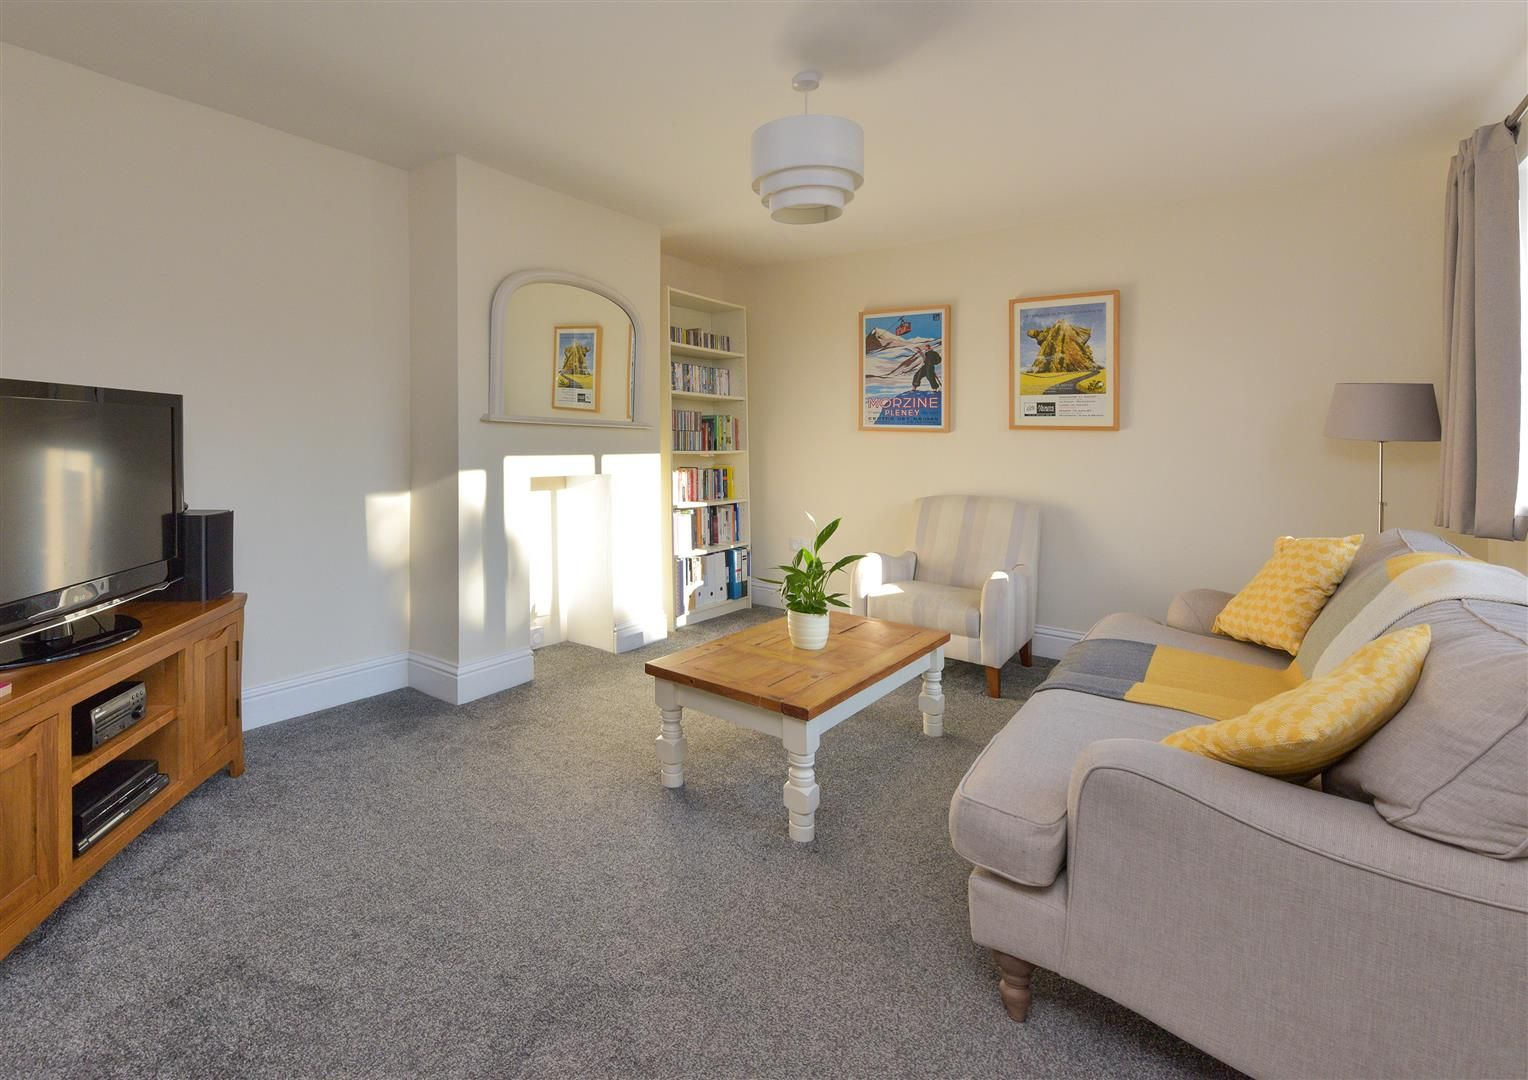 3 bed house for sale in Clent 10